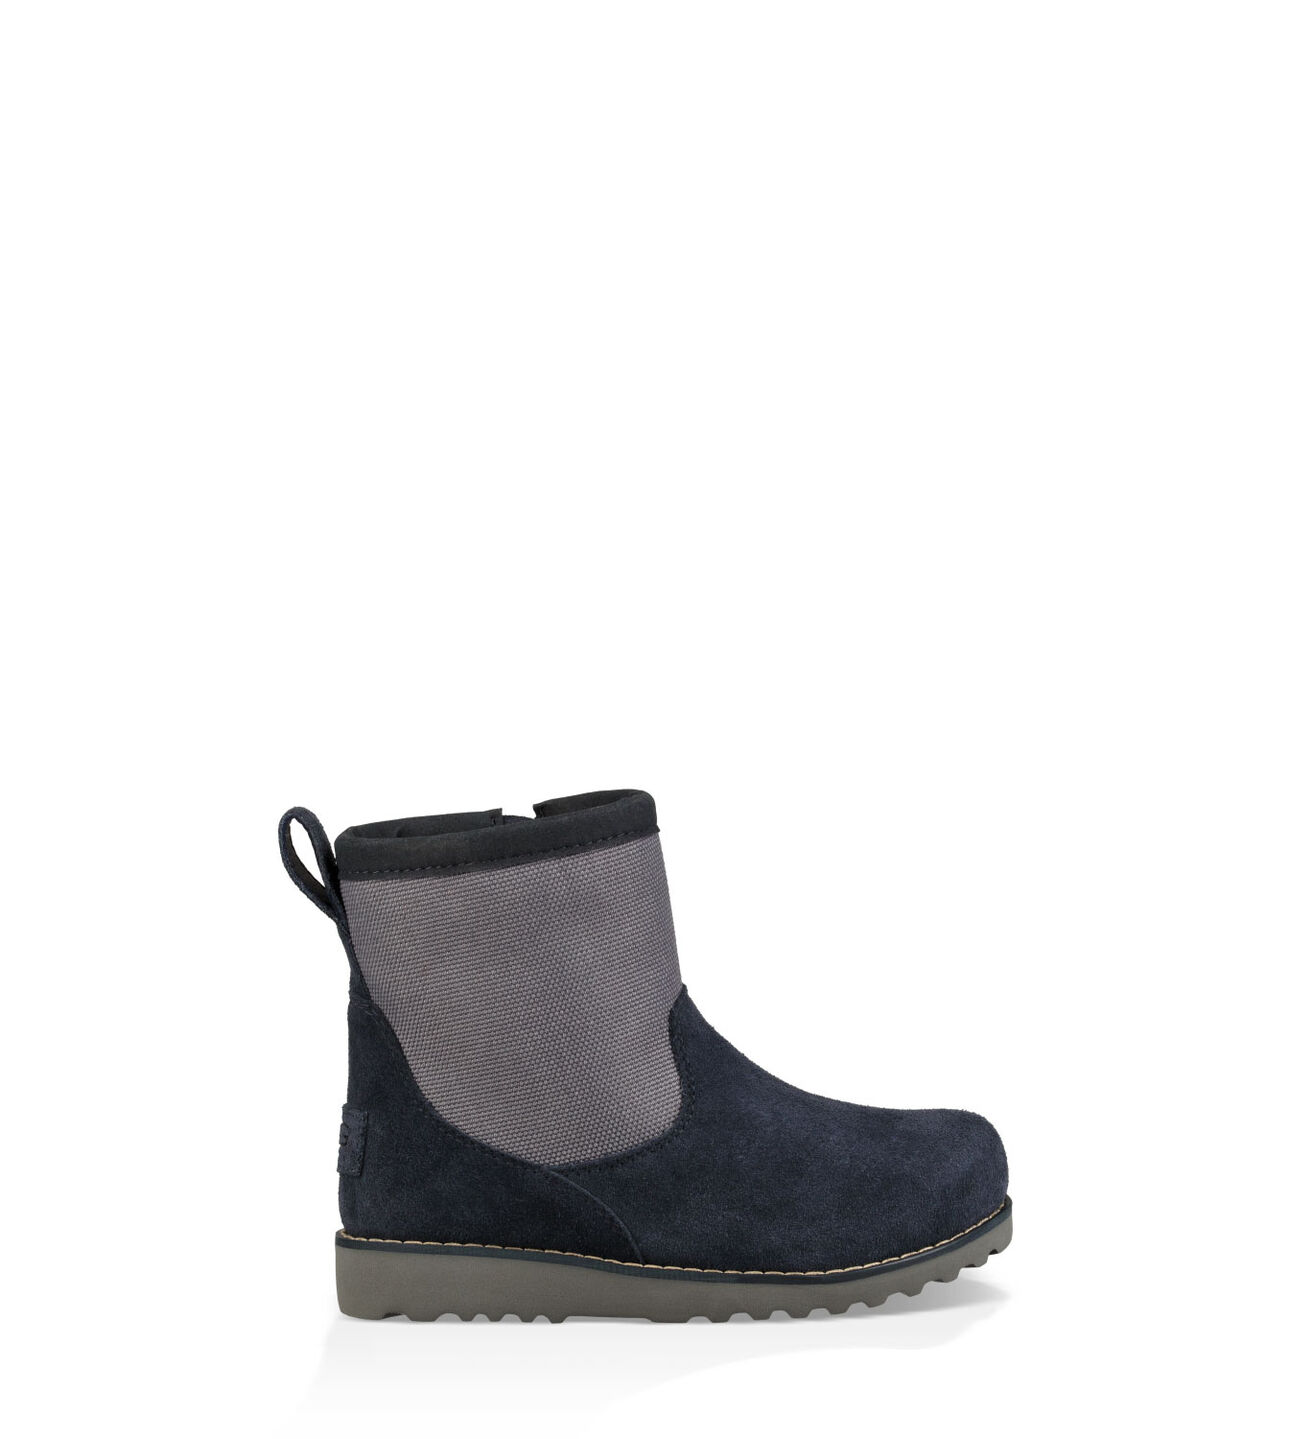 b414ac5f7 Bayson II CWR Boot for Kids | UGG® Official